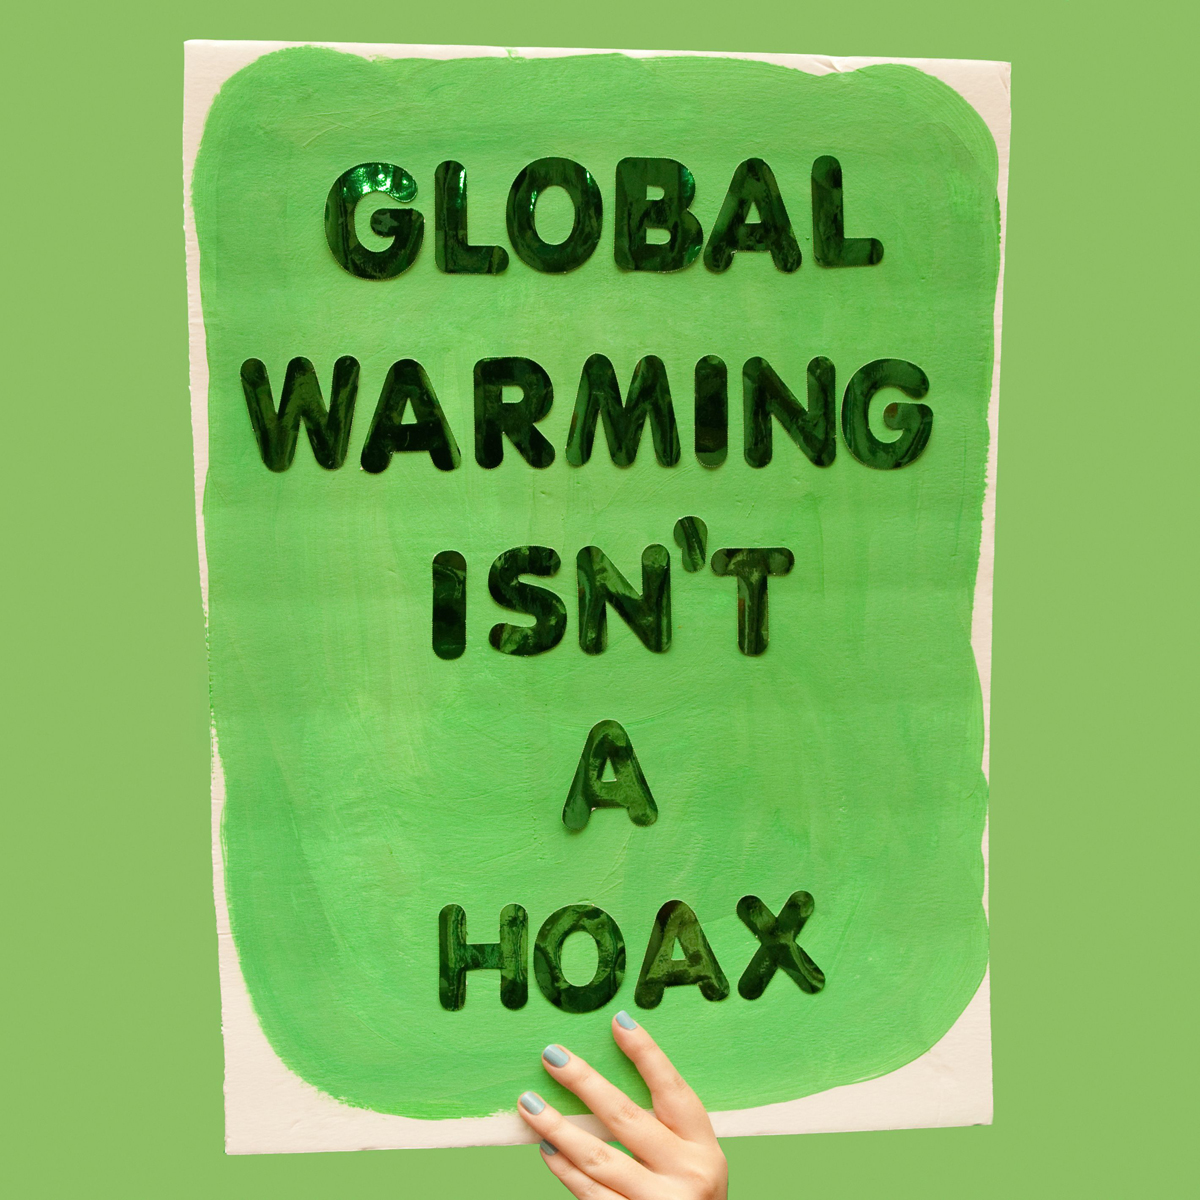 45 Protest Signs_Brandon and Olivia Locher_8_Global Warming Isnt A Hoax